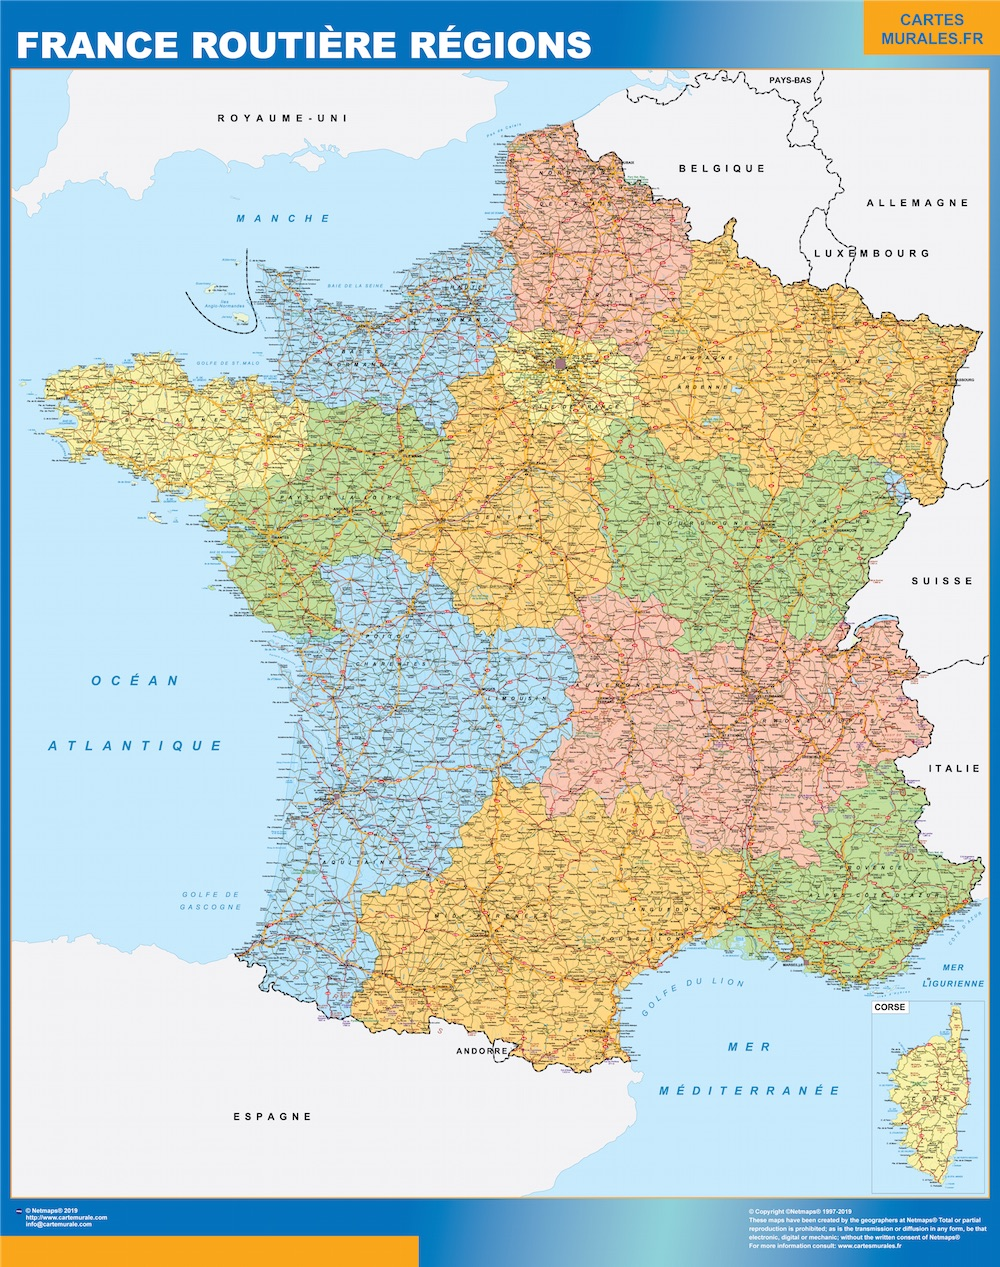 Carte de France routière